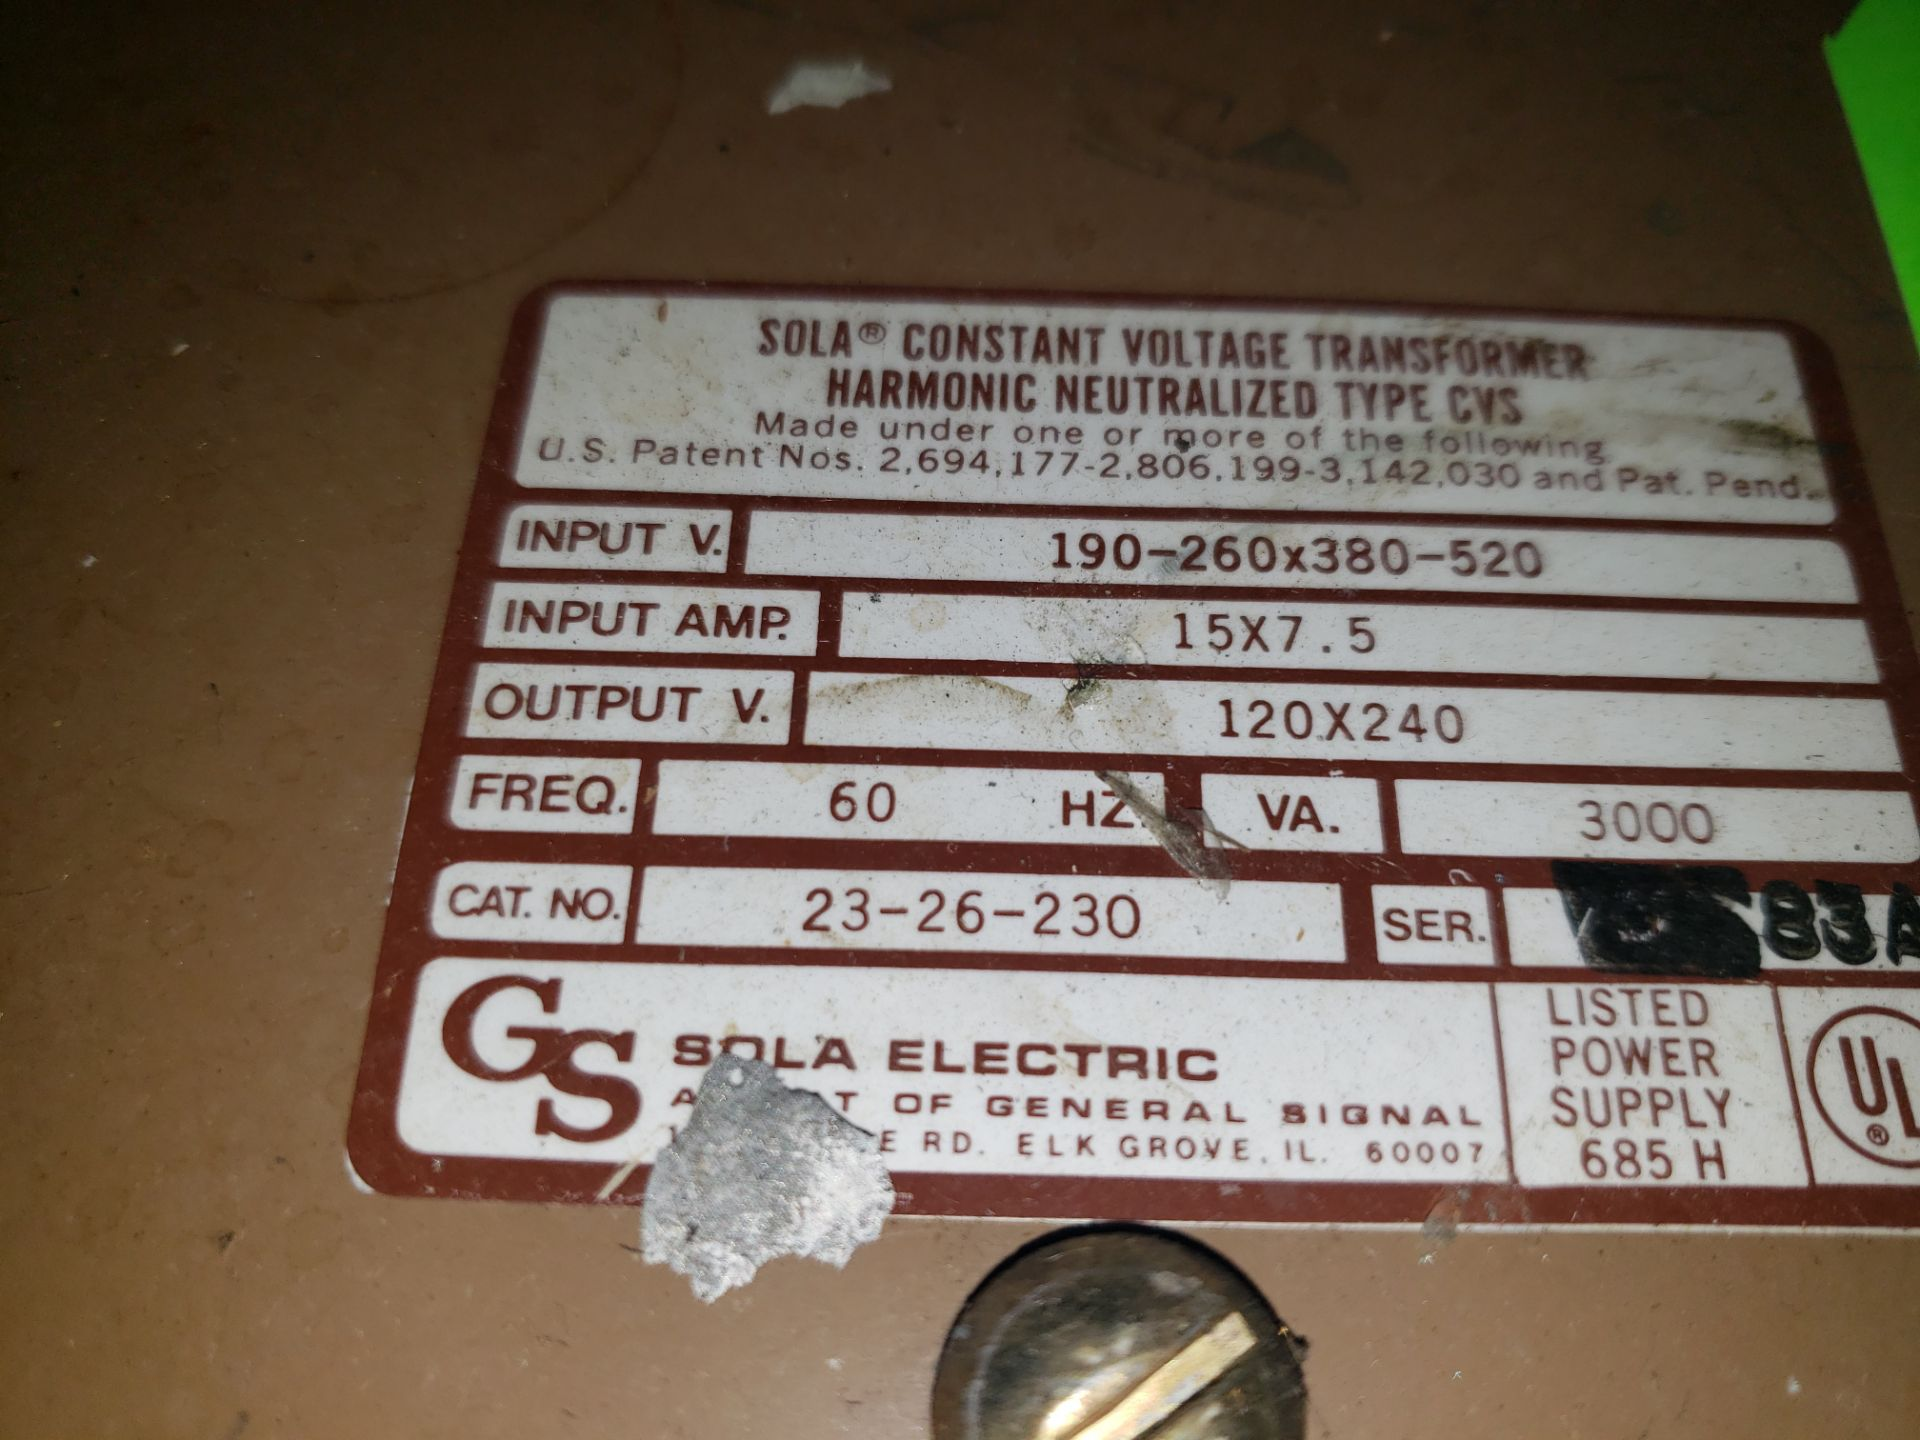 Lot 32 - SOLA CONSTANT VOLTAGE TRANSFORMER TYPE-CVS INPUT-190-260-X380-520 INPUT AMP 15 X 7.5 OUTPUT 120 X